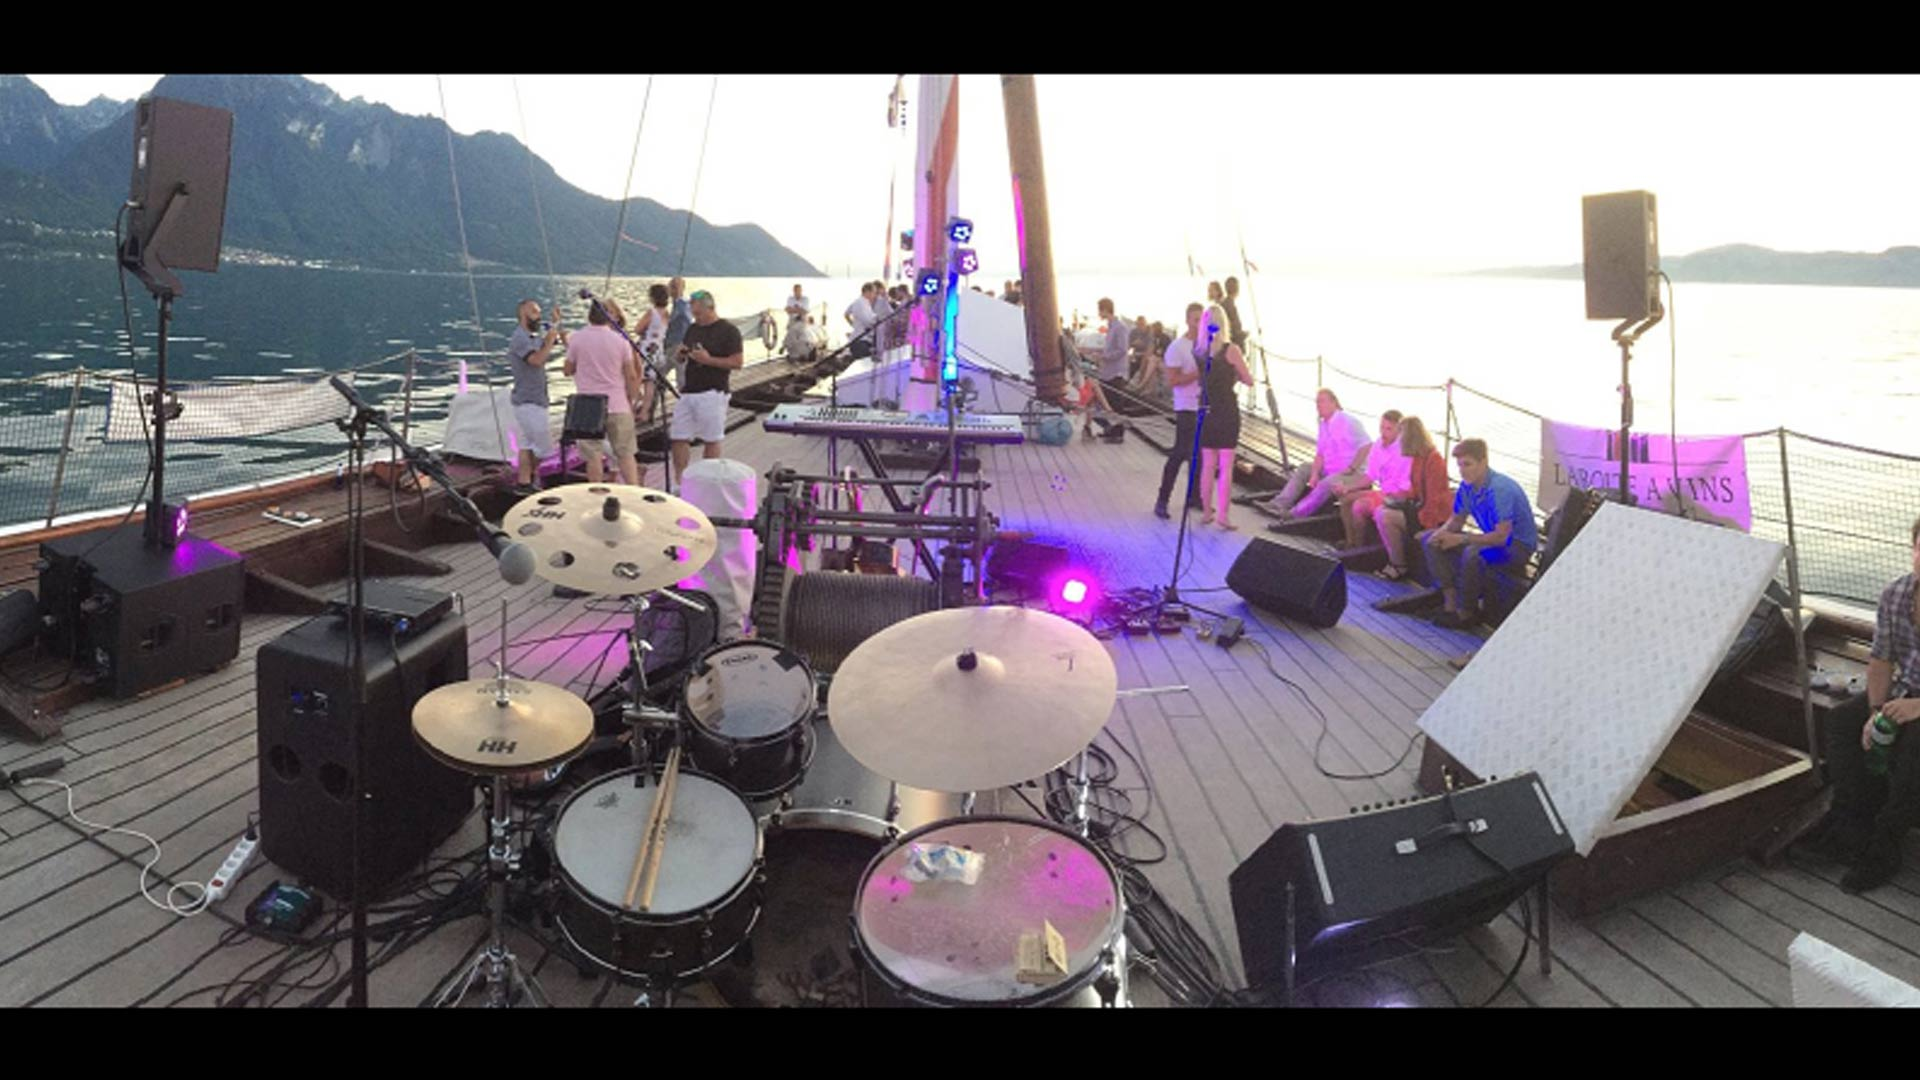 Live On The Lake - Montreux, Villeneuve - Privilege Events